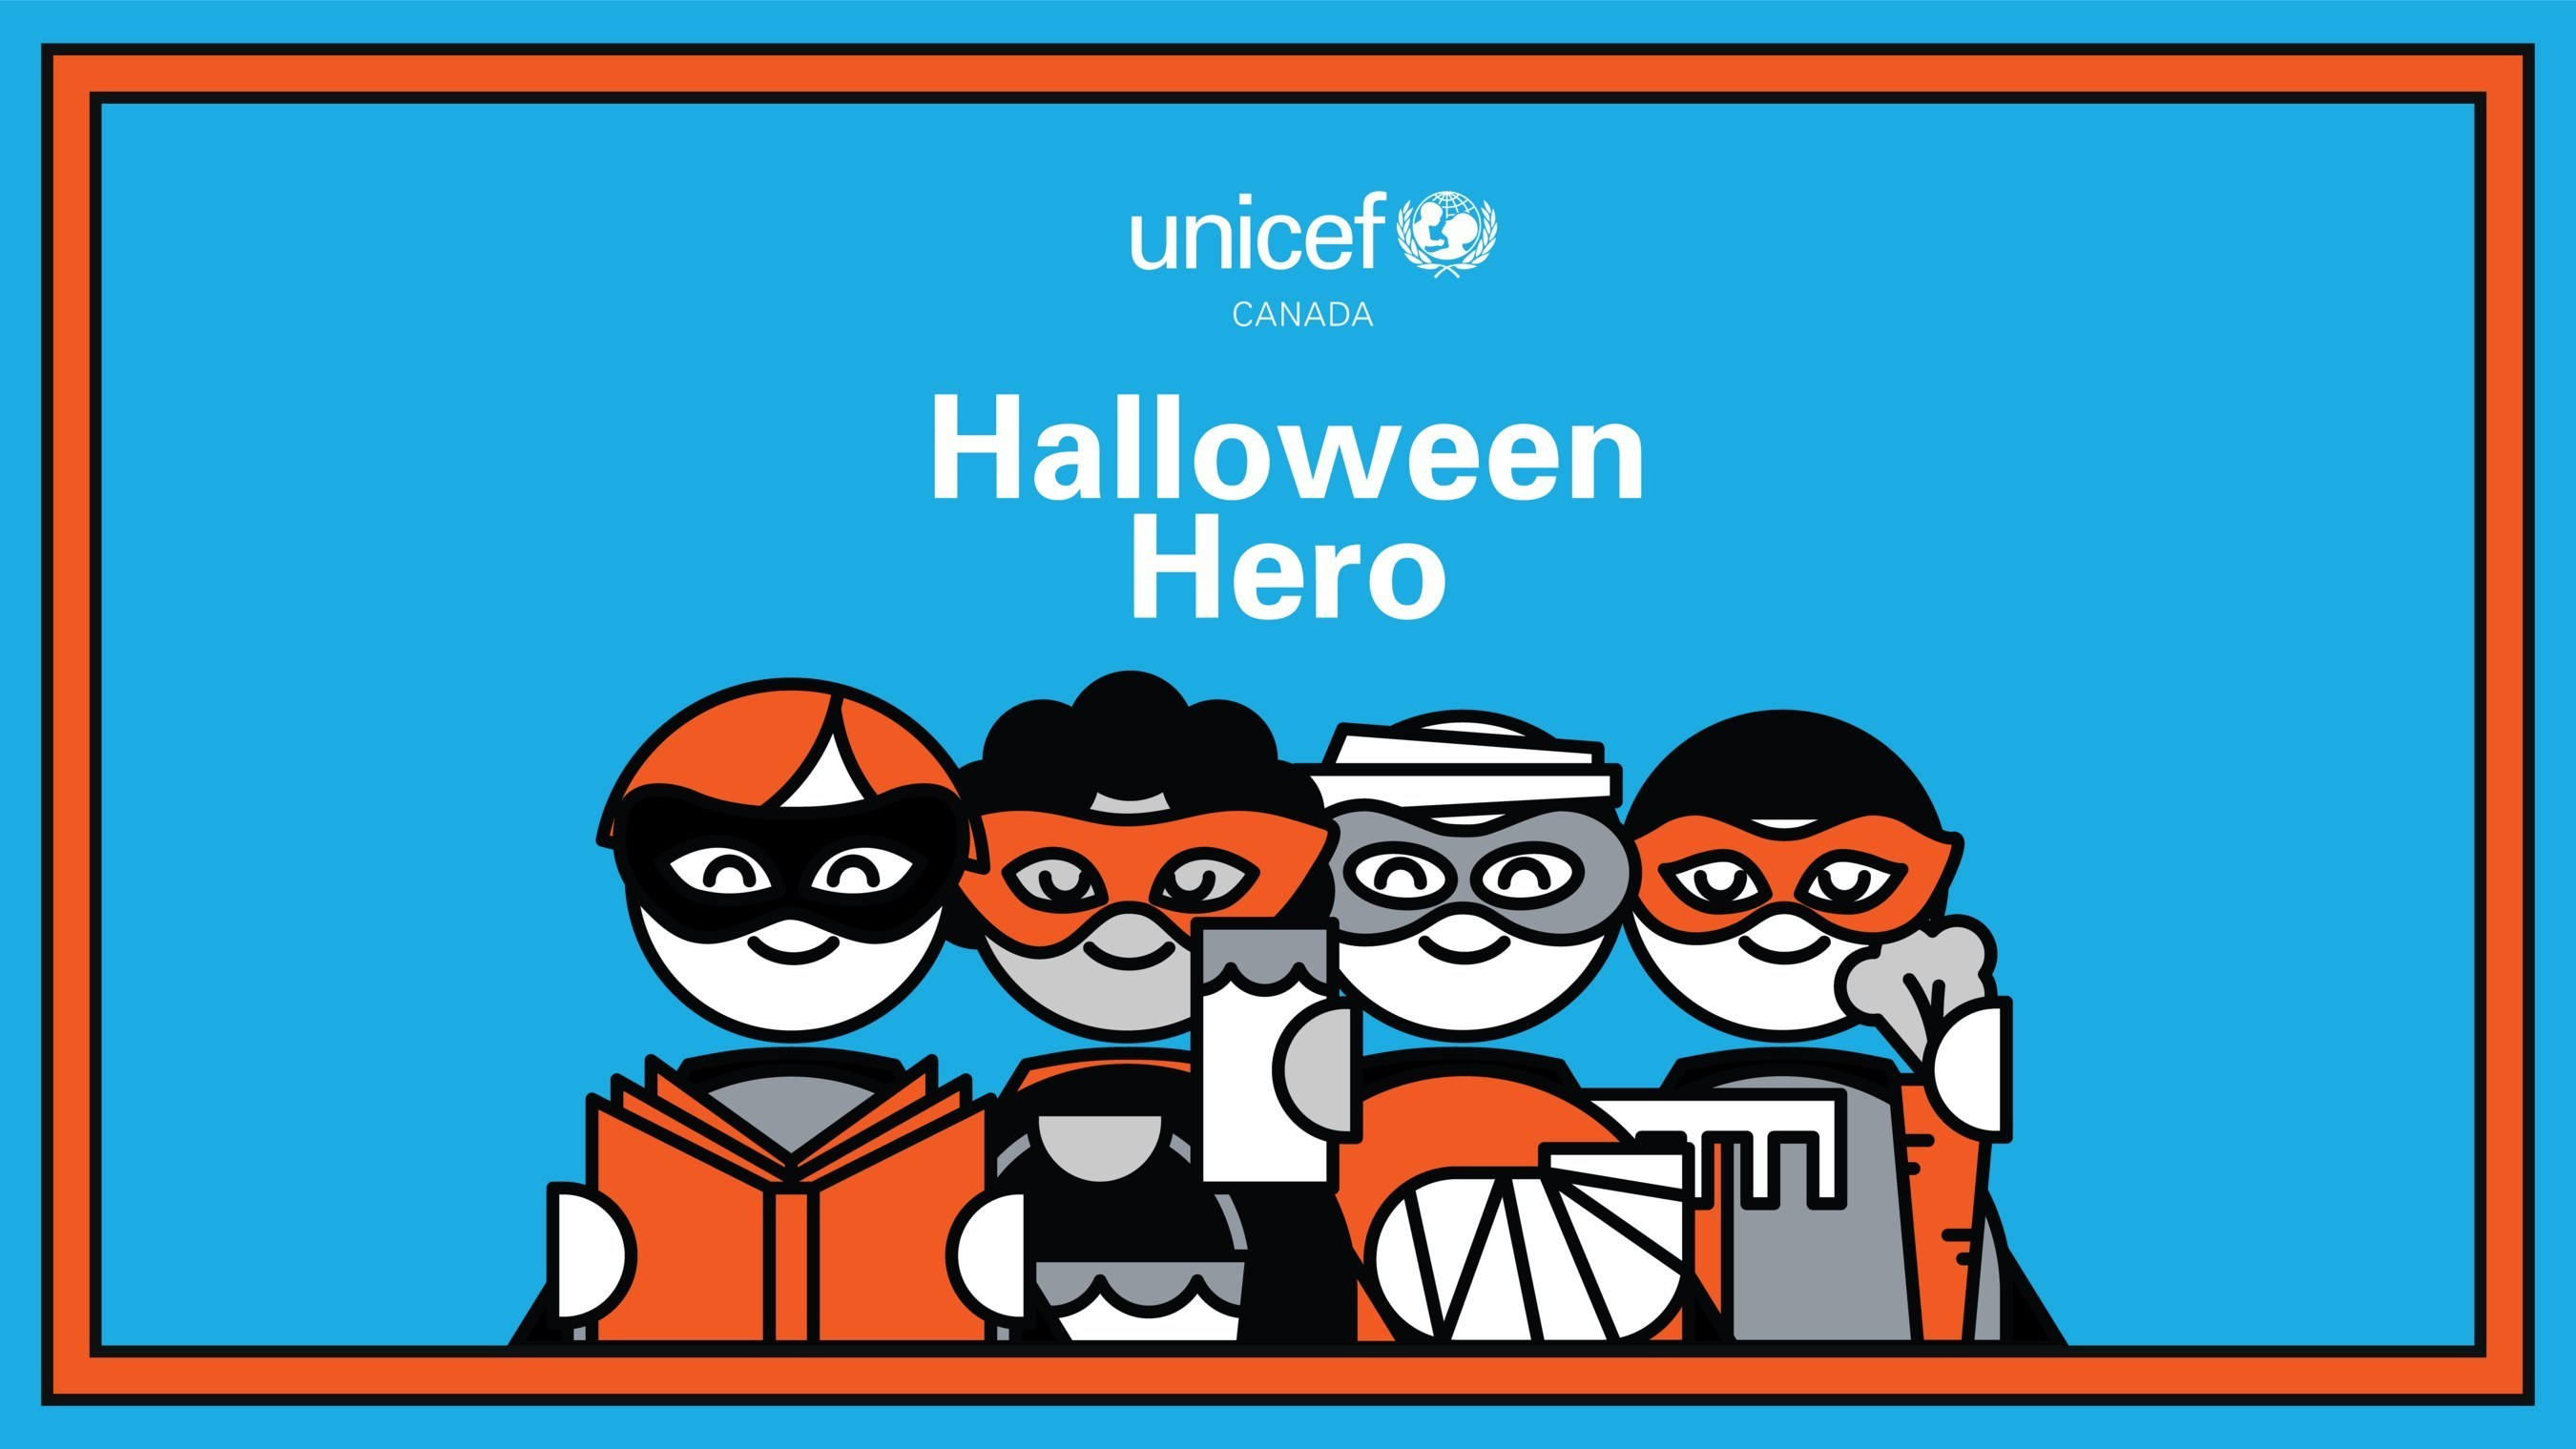 UNICEF is Back for Halloween